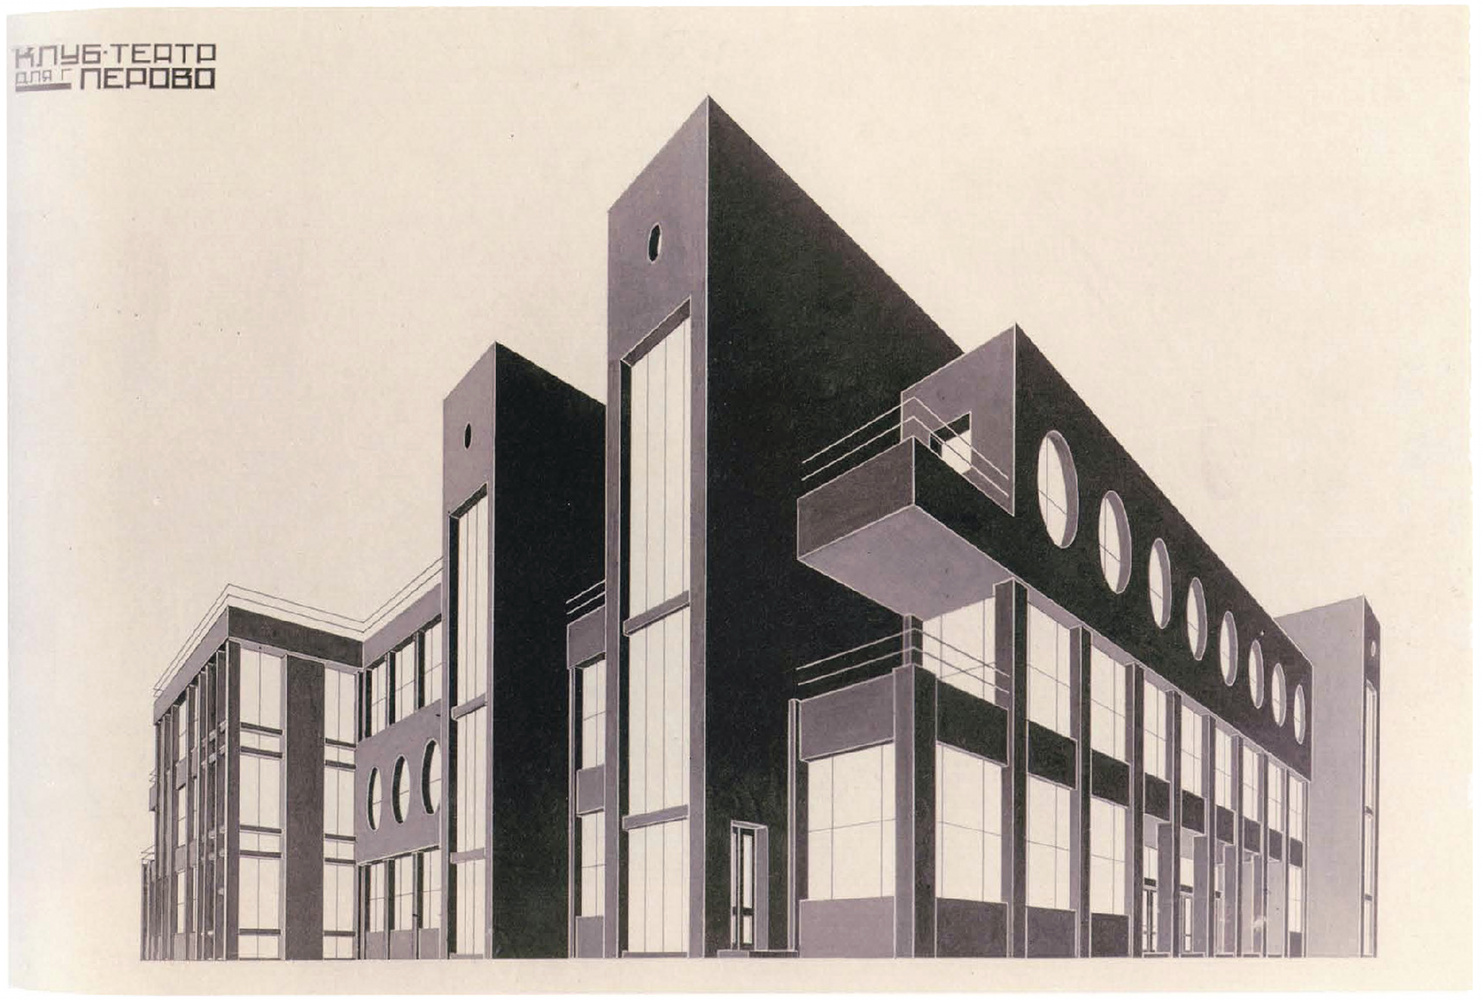 Mikhail Barkhin, supervisor Panteleimon Golosov, club in the town of Petrov, competition project, 2nd prize 1926